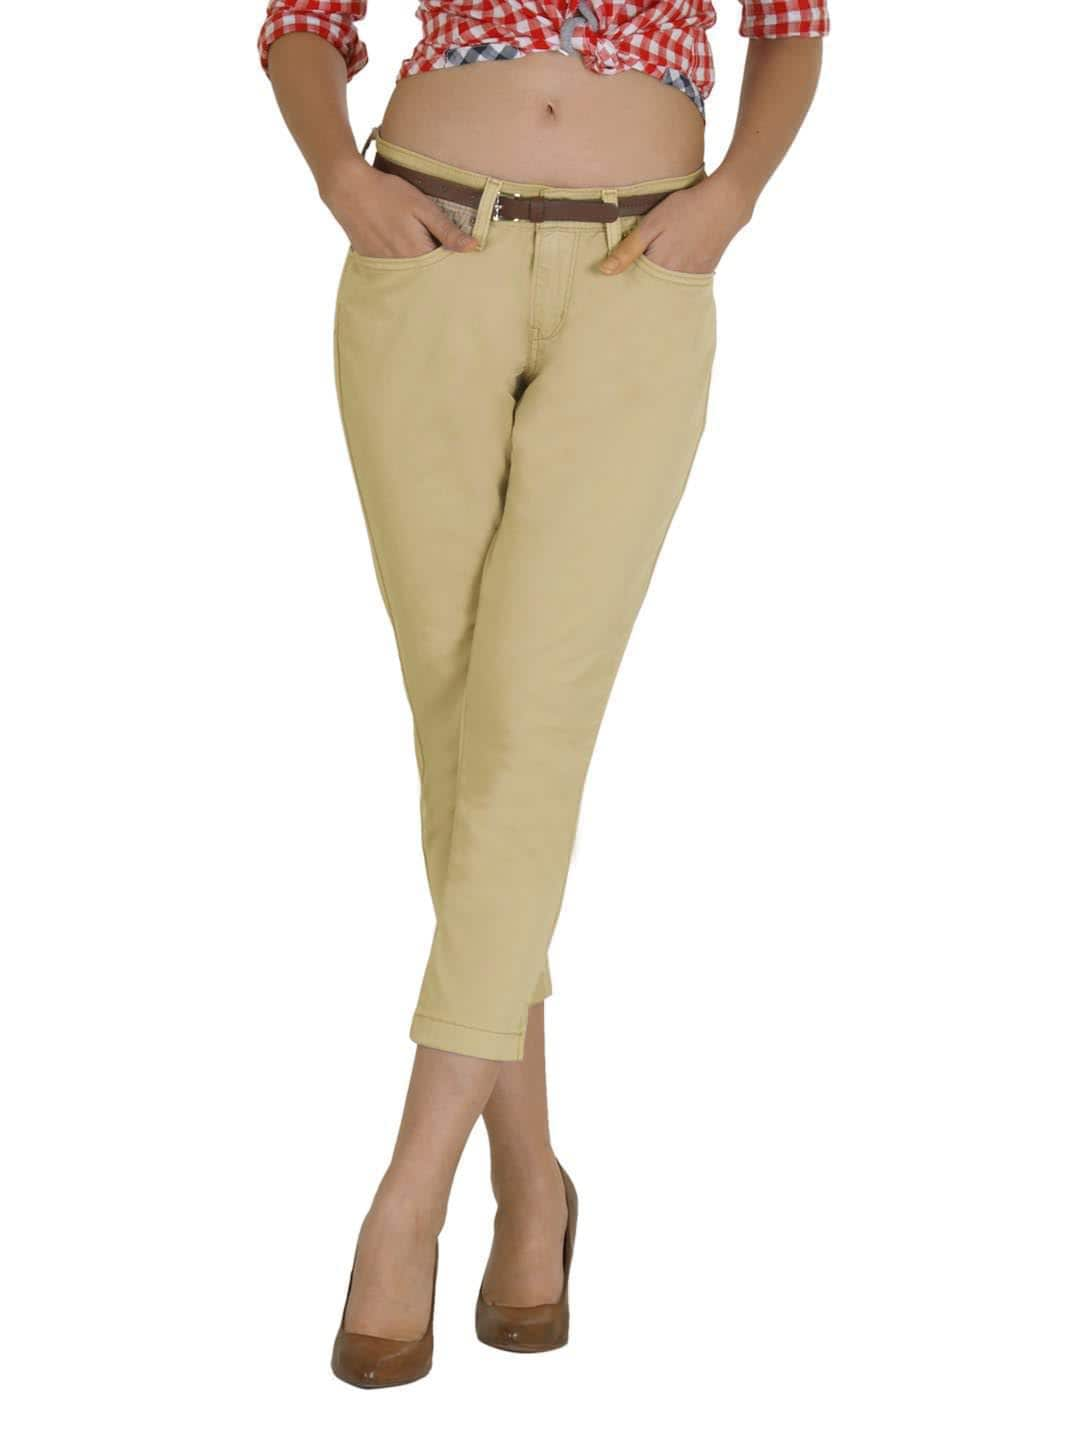 Shop for womens khaki pants online at Target. Free shipping on purchases over $35 and save 5% every day with your Target REDcard.